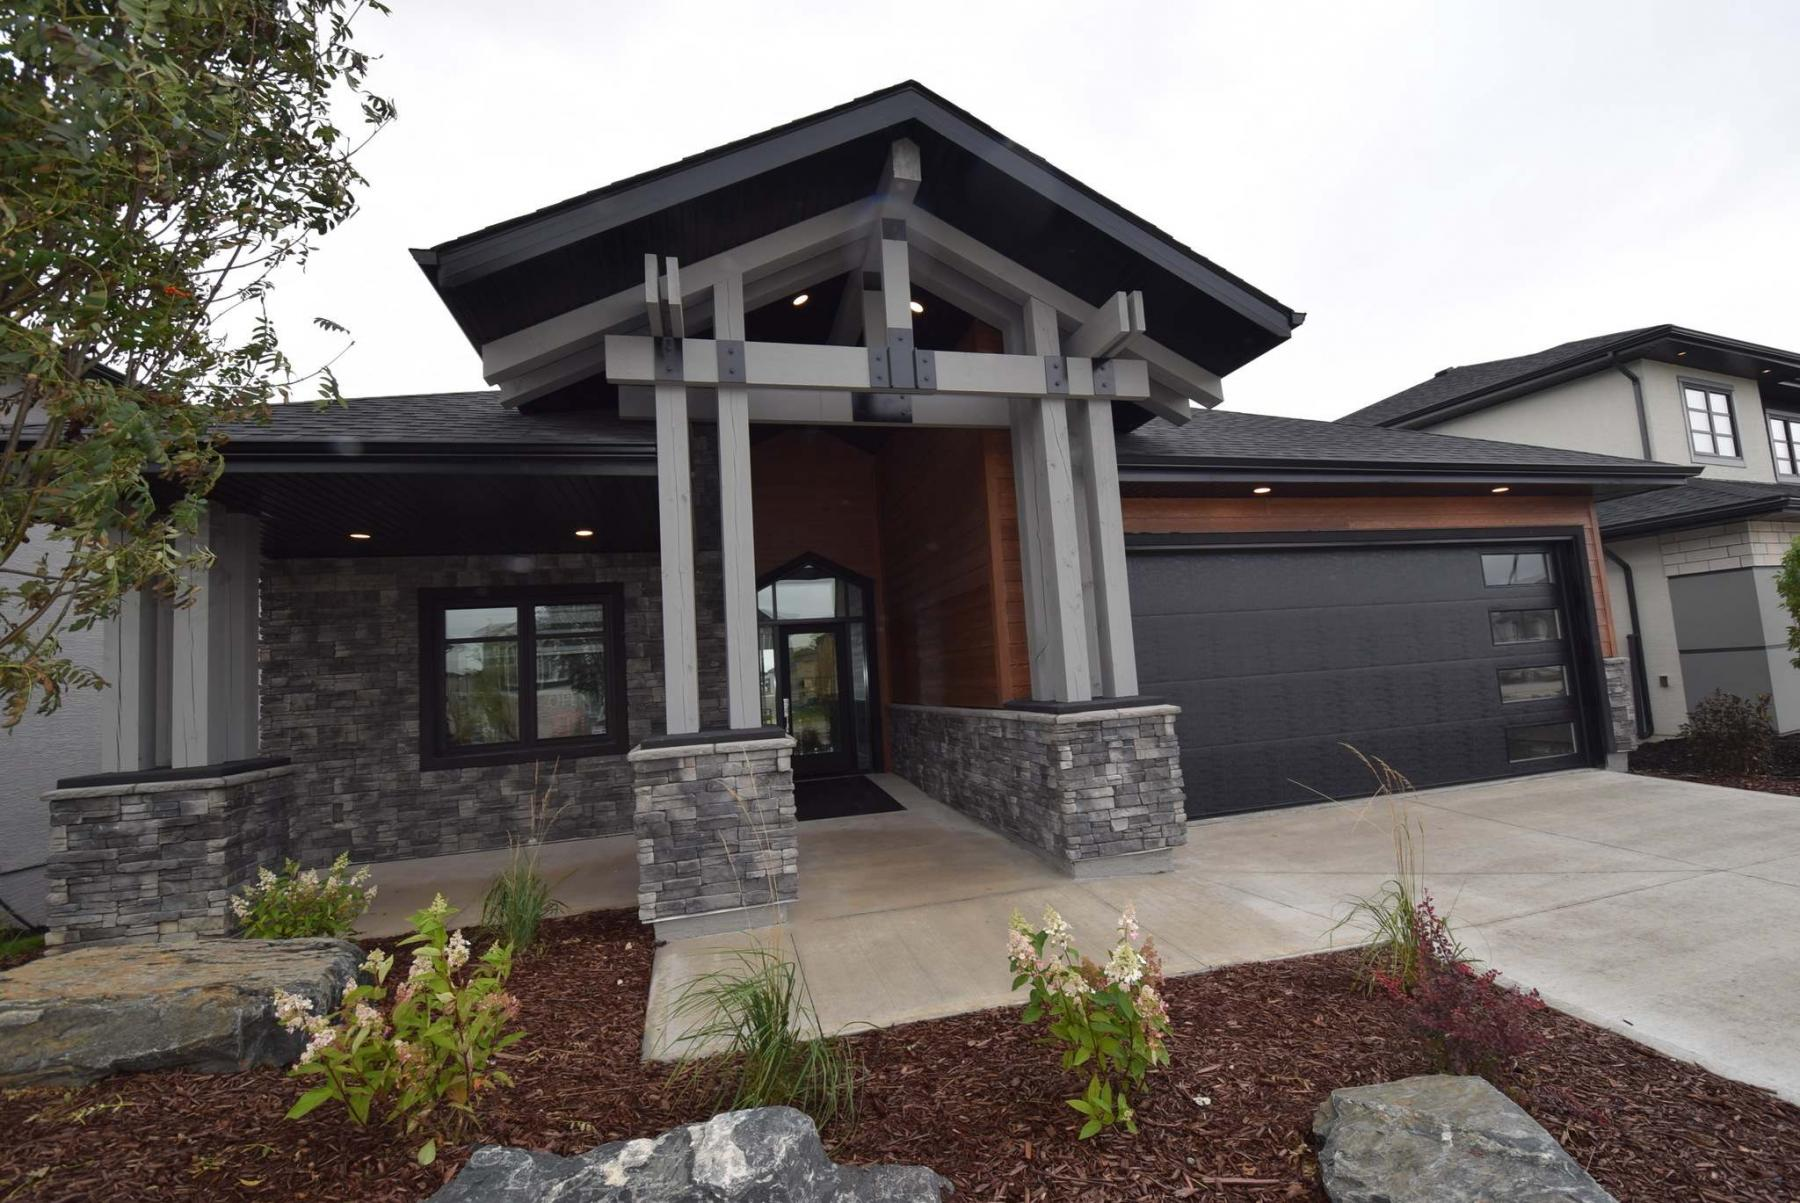 <p>TODD LEWYS / WINNIPEG FREE PRESS</p><p>The clean, linear design of 661 Bridge Lake Dr. starts with a classy, understated exterior. The entrance features a peaked roof with wooden pillars and beams and cultured stone trim.</p>